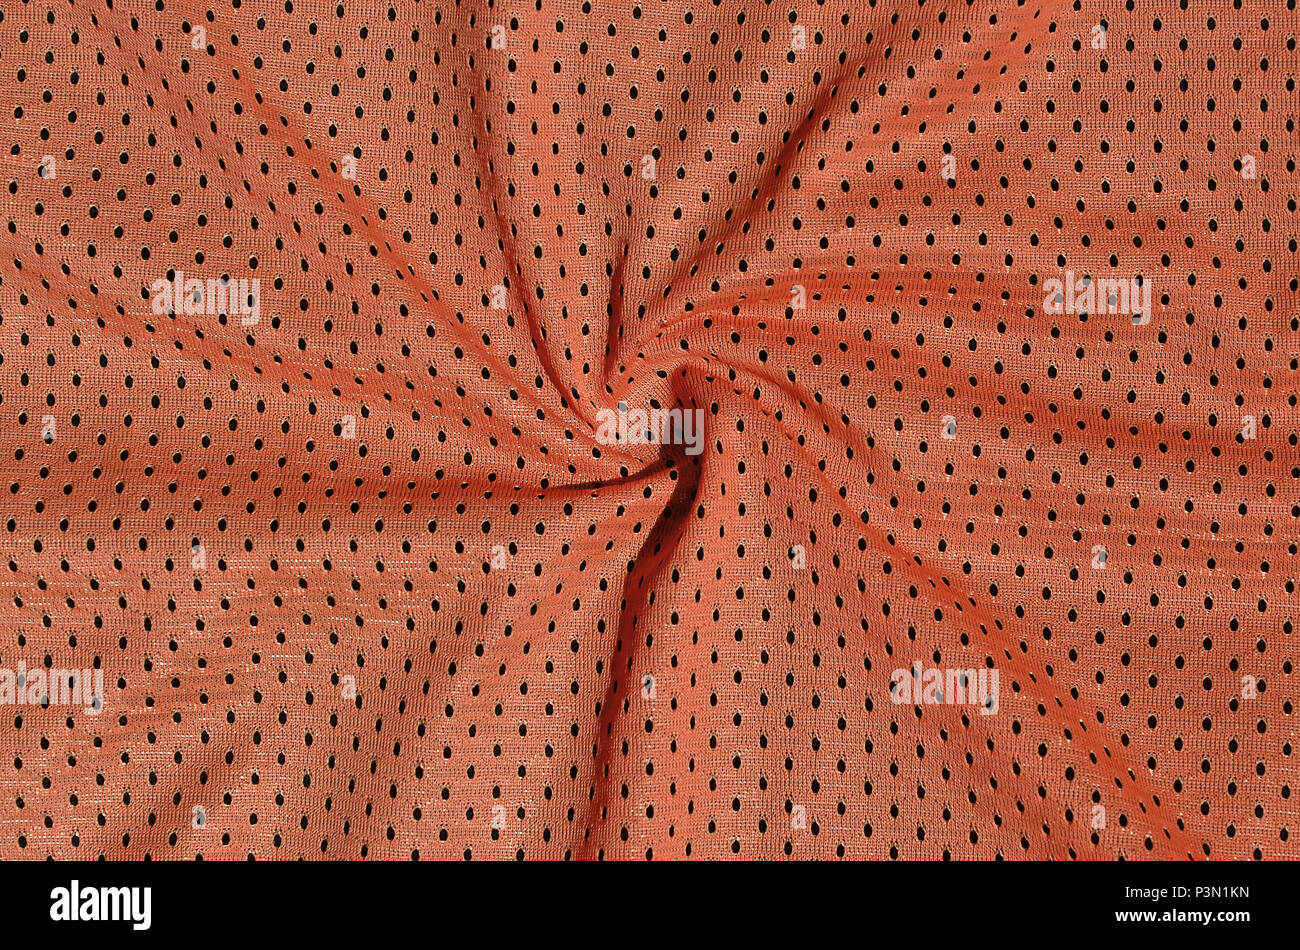 Texture of sportswear made of polyester fiber. Outerwear for sports training has a mesh texture of stretchable nylon fabric - Stock Image